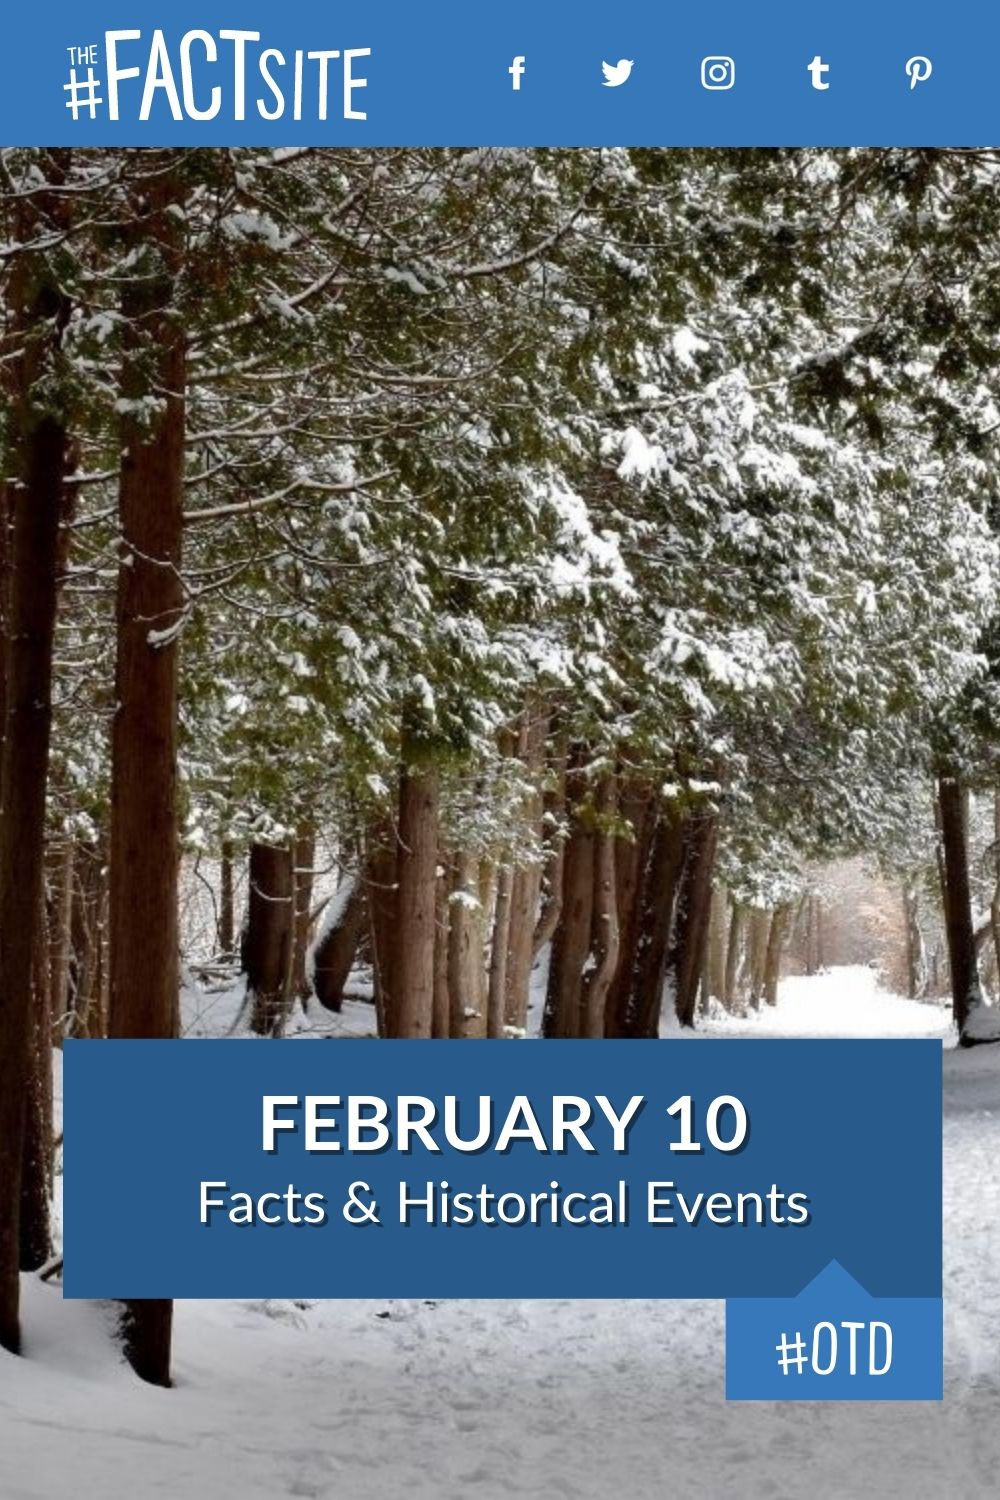 Facts & Historic Events That Happened on February 10